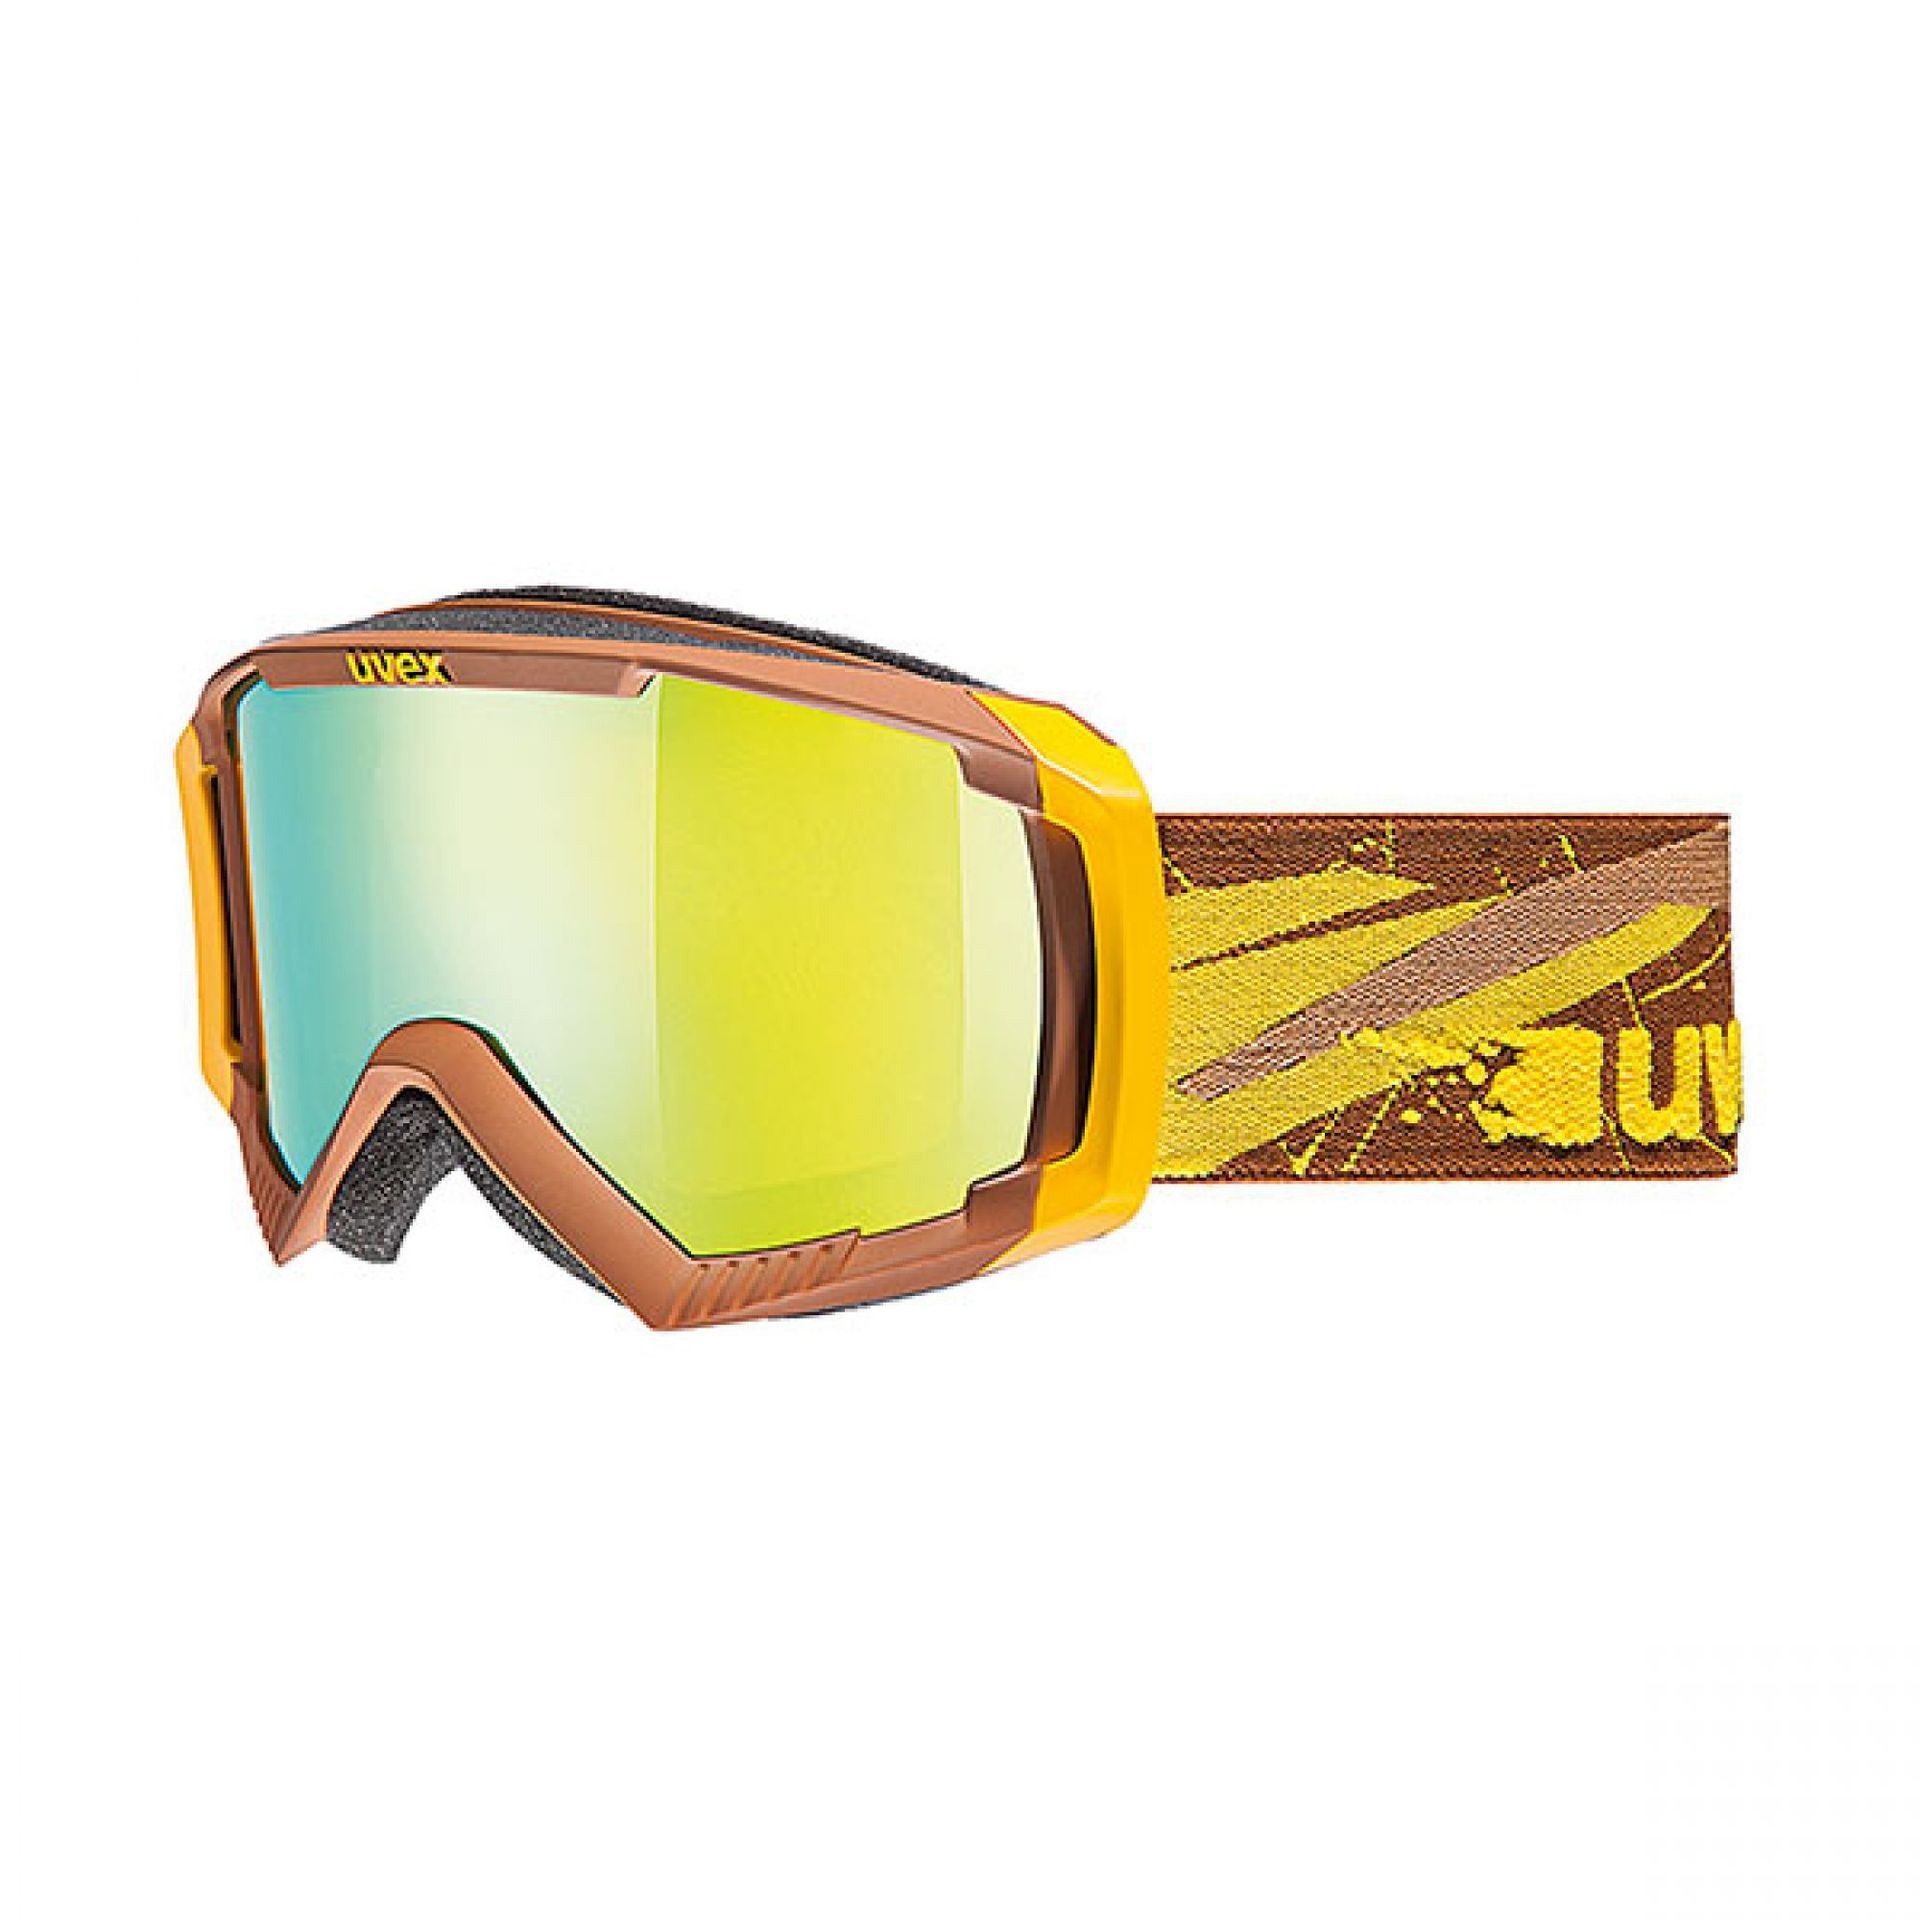 GOGLE UVEX APACHE II LTM BROWN YELLOW MAT LITEMIRROW YELLOW LASERGOLD LITE S4